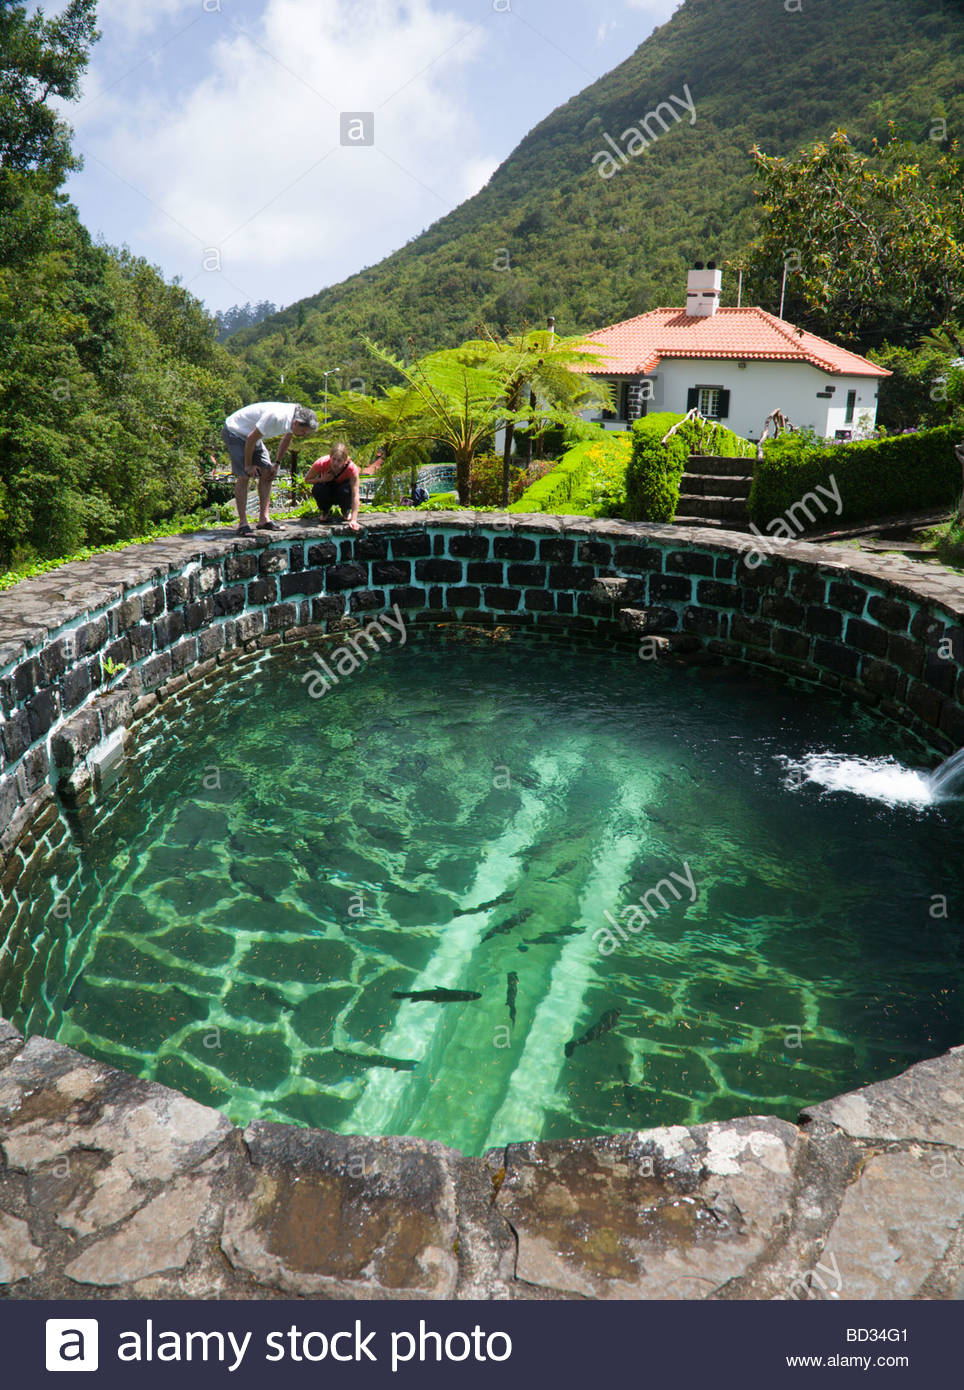 A tourist couple watch trout at the trout farm in Ribeiro Frio, Madeira. - Stock Image